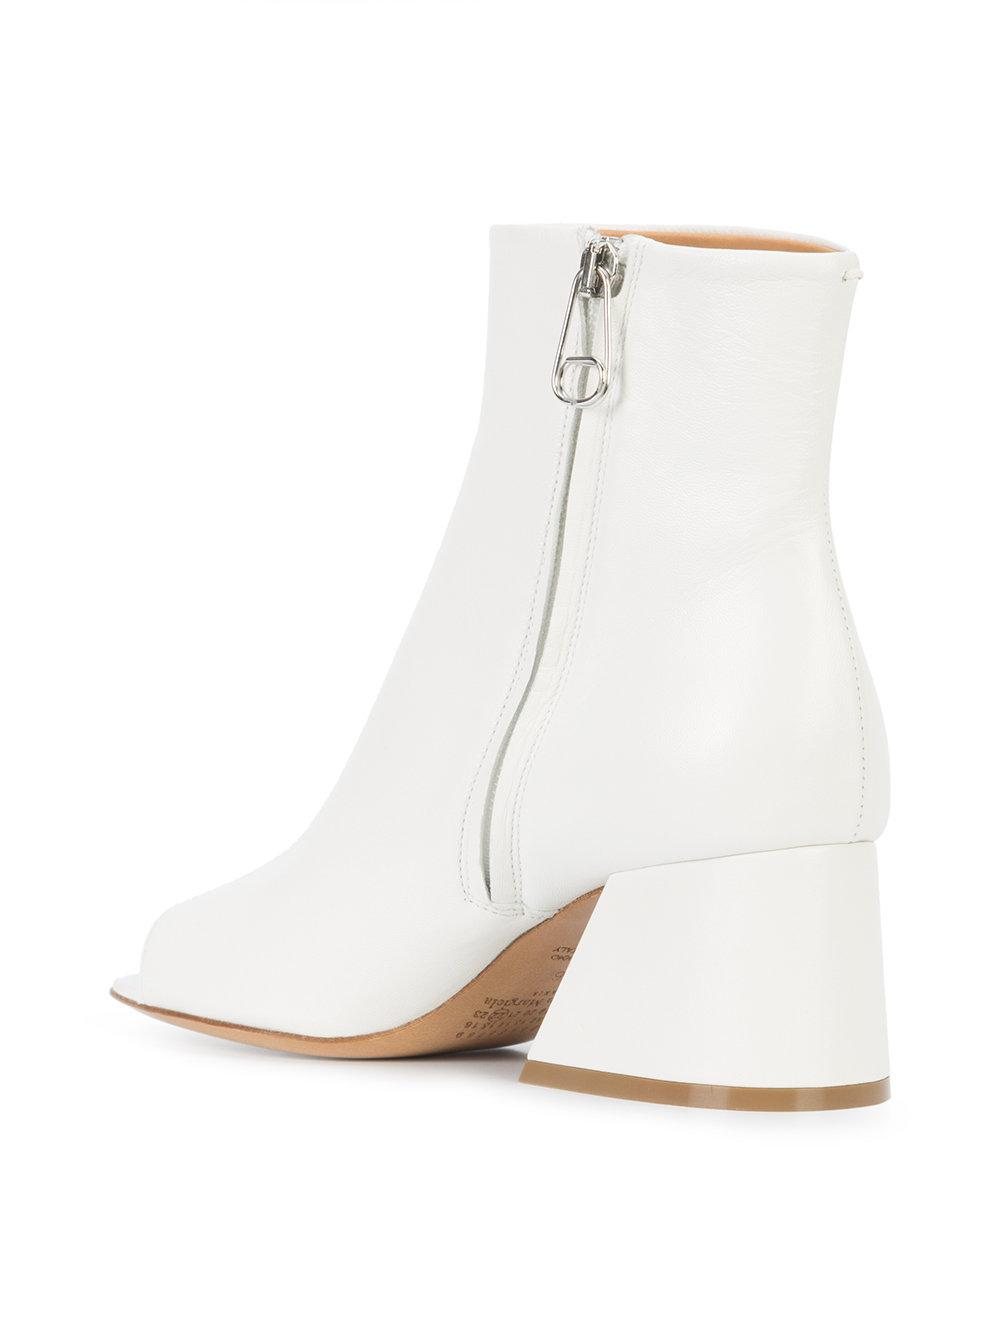 Maison Margiela Leather Open Toe Ankle Boots in White